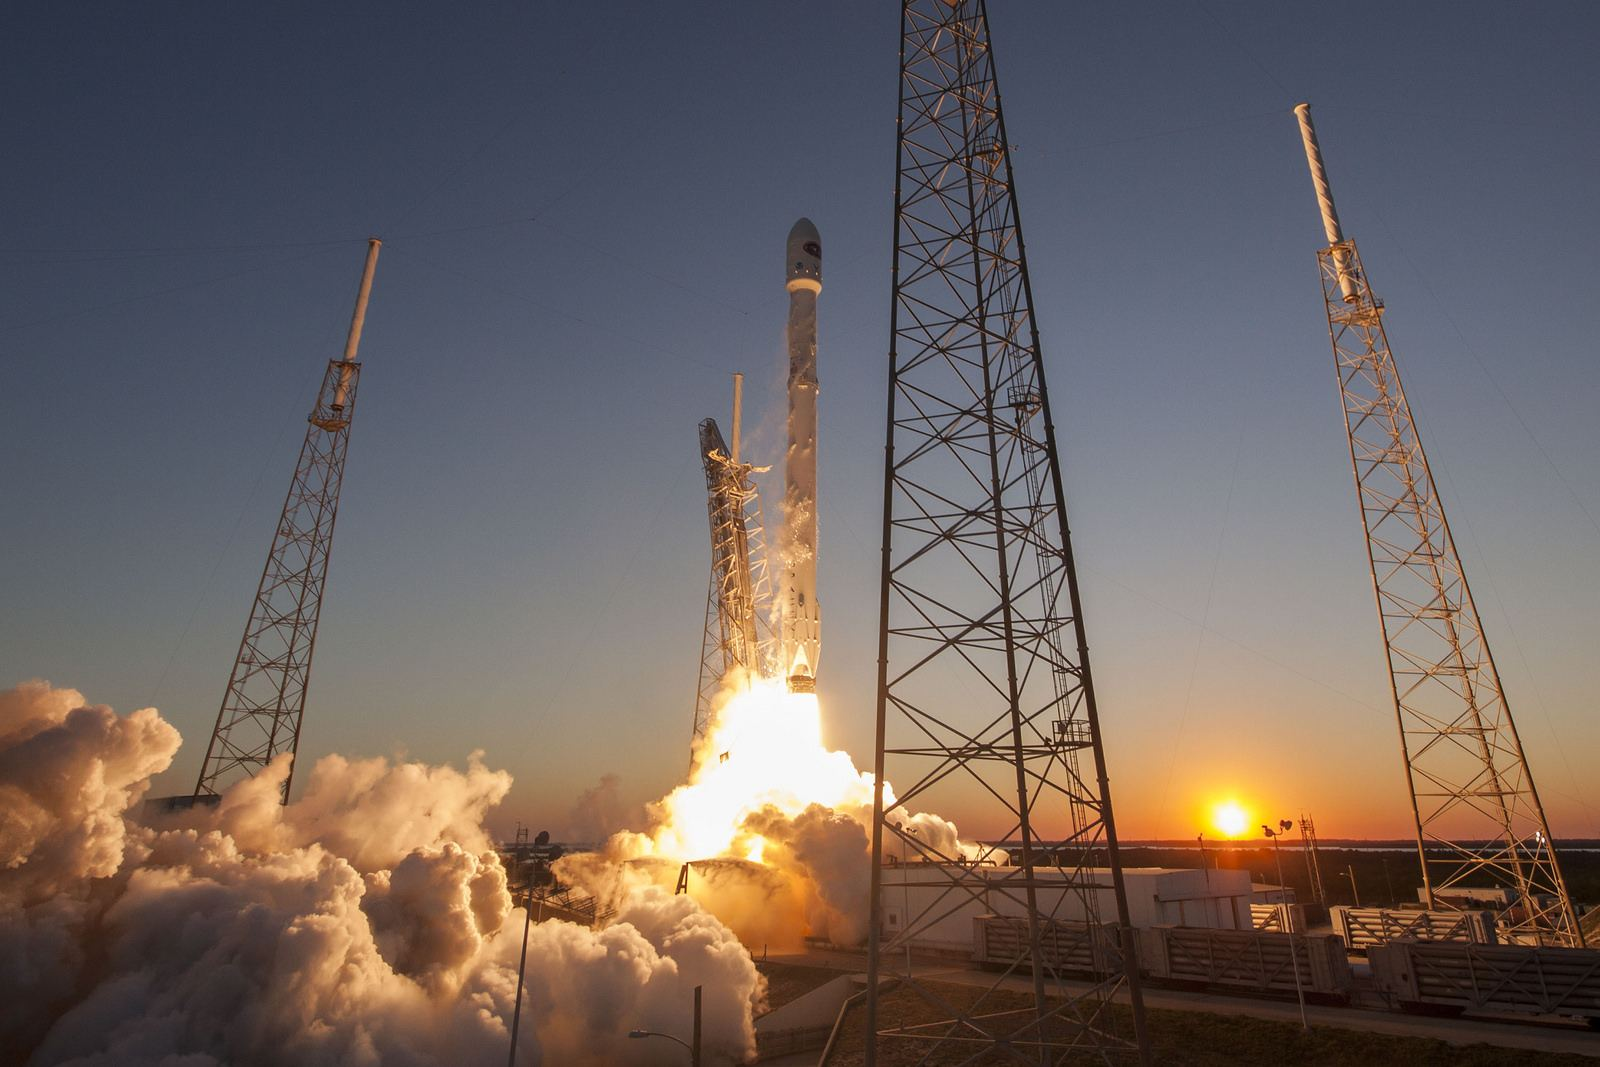 spacex Falcon 9 lifted off from SpaceX Launch Complex